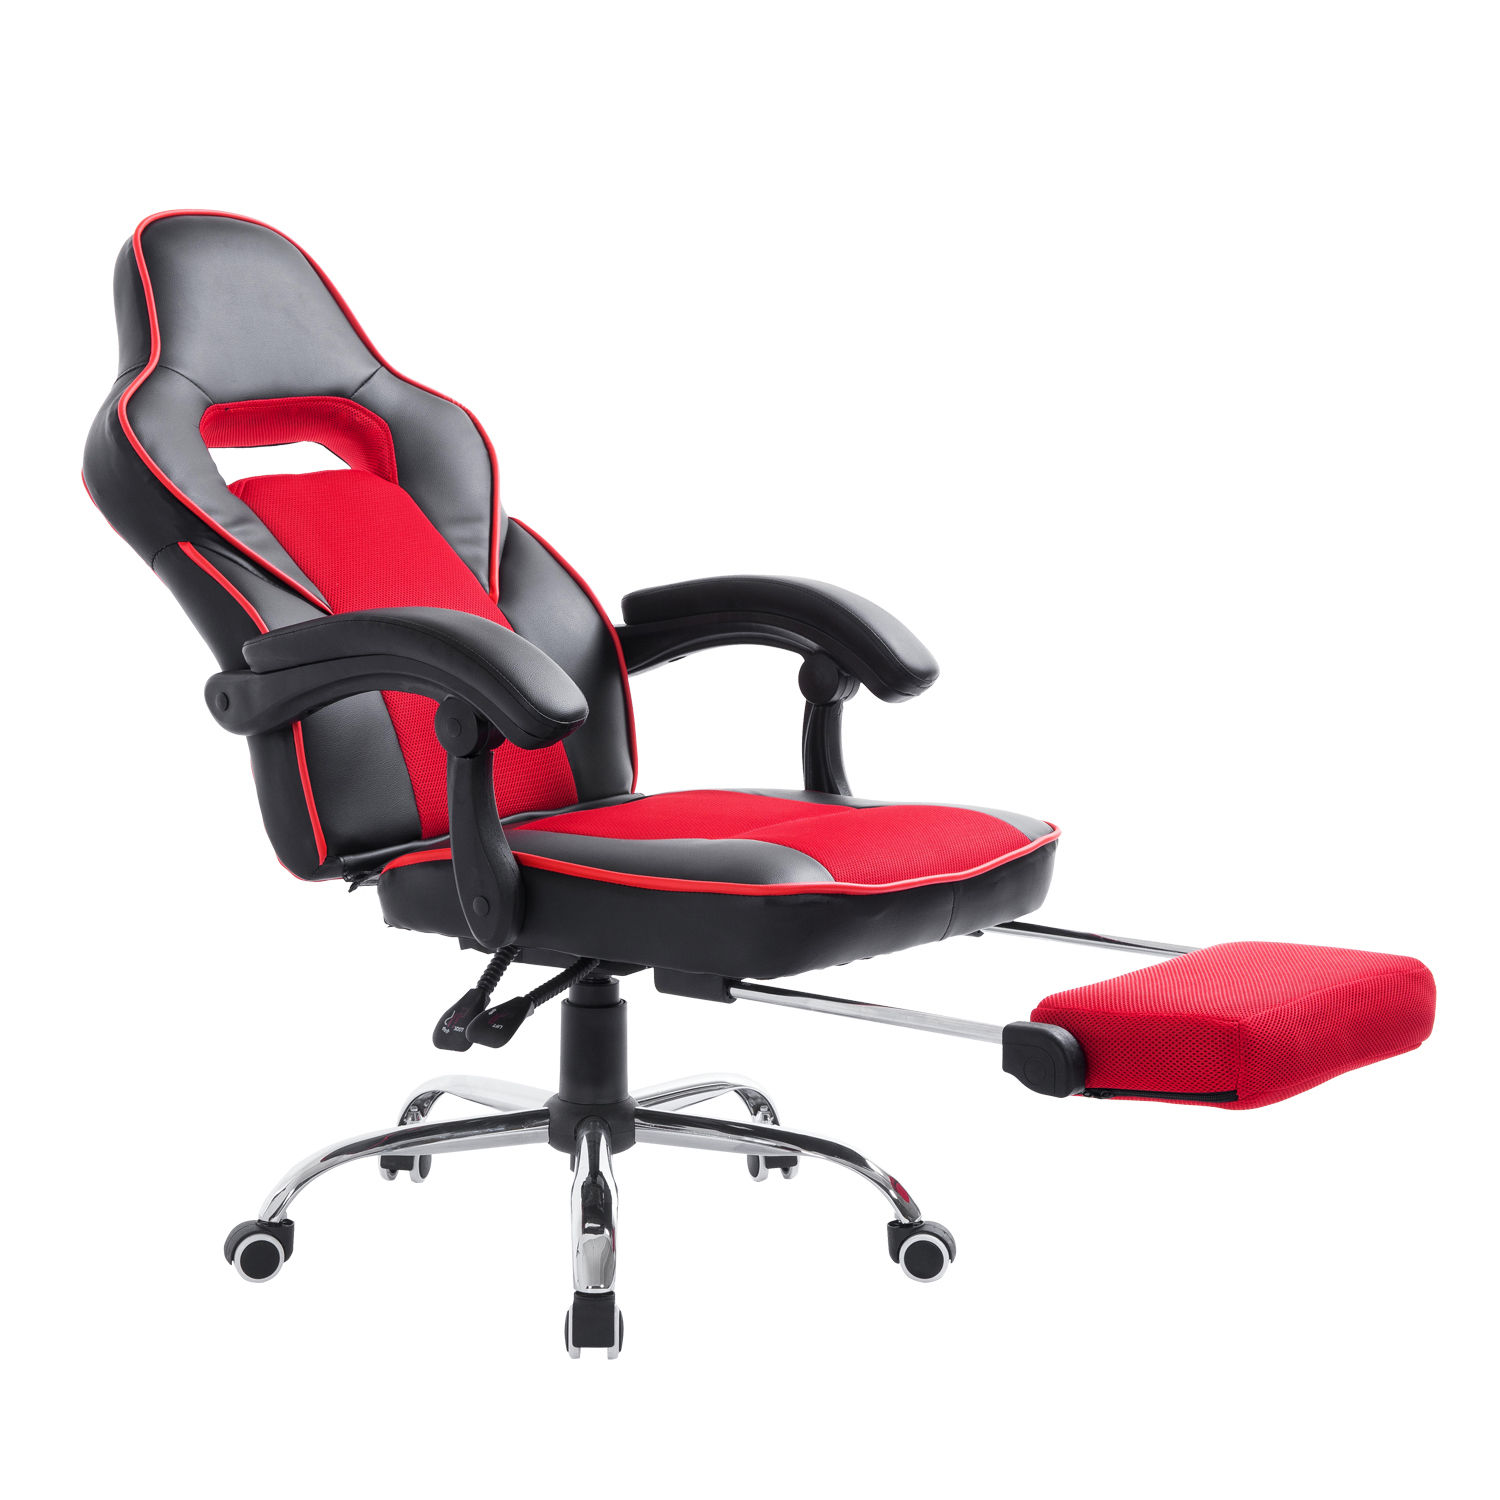 Racing Seat Office Chair High Back Office Chair Gaming Swivel Race Car Style Pu